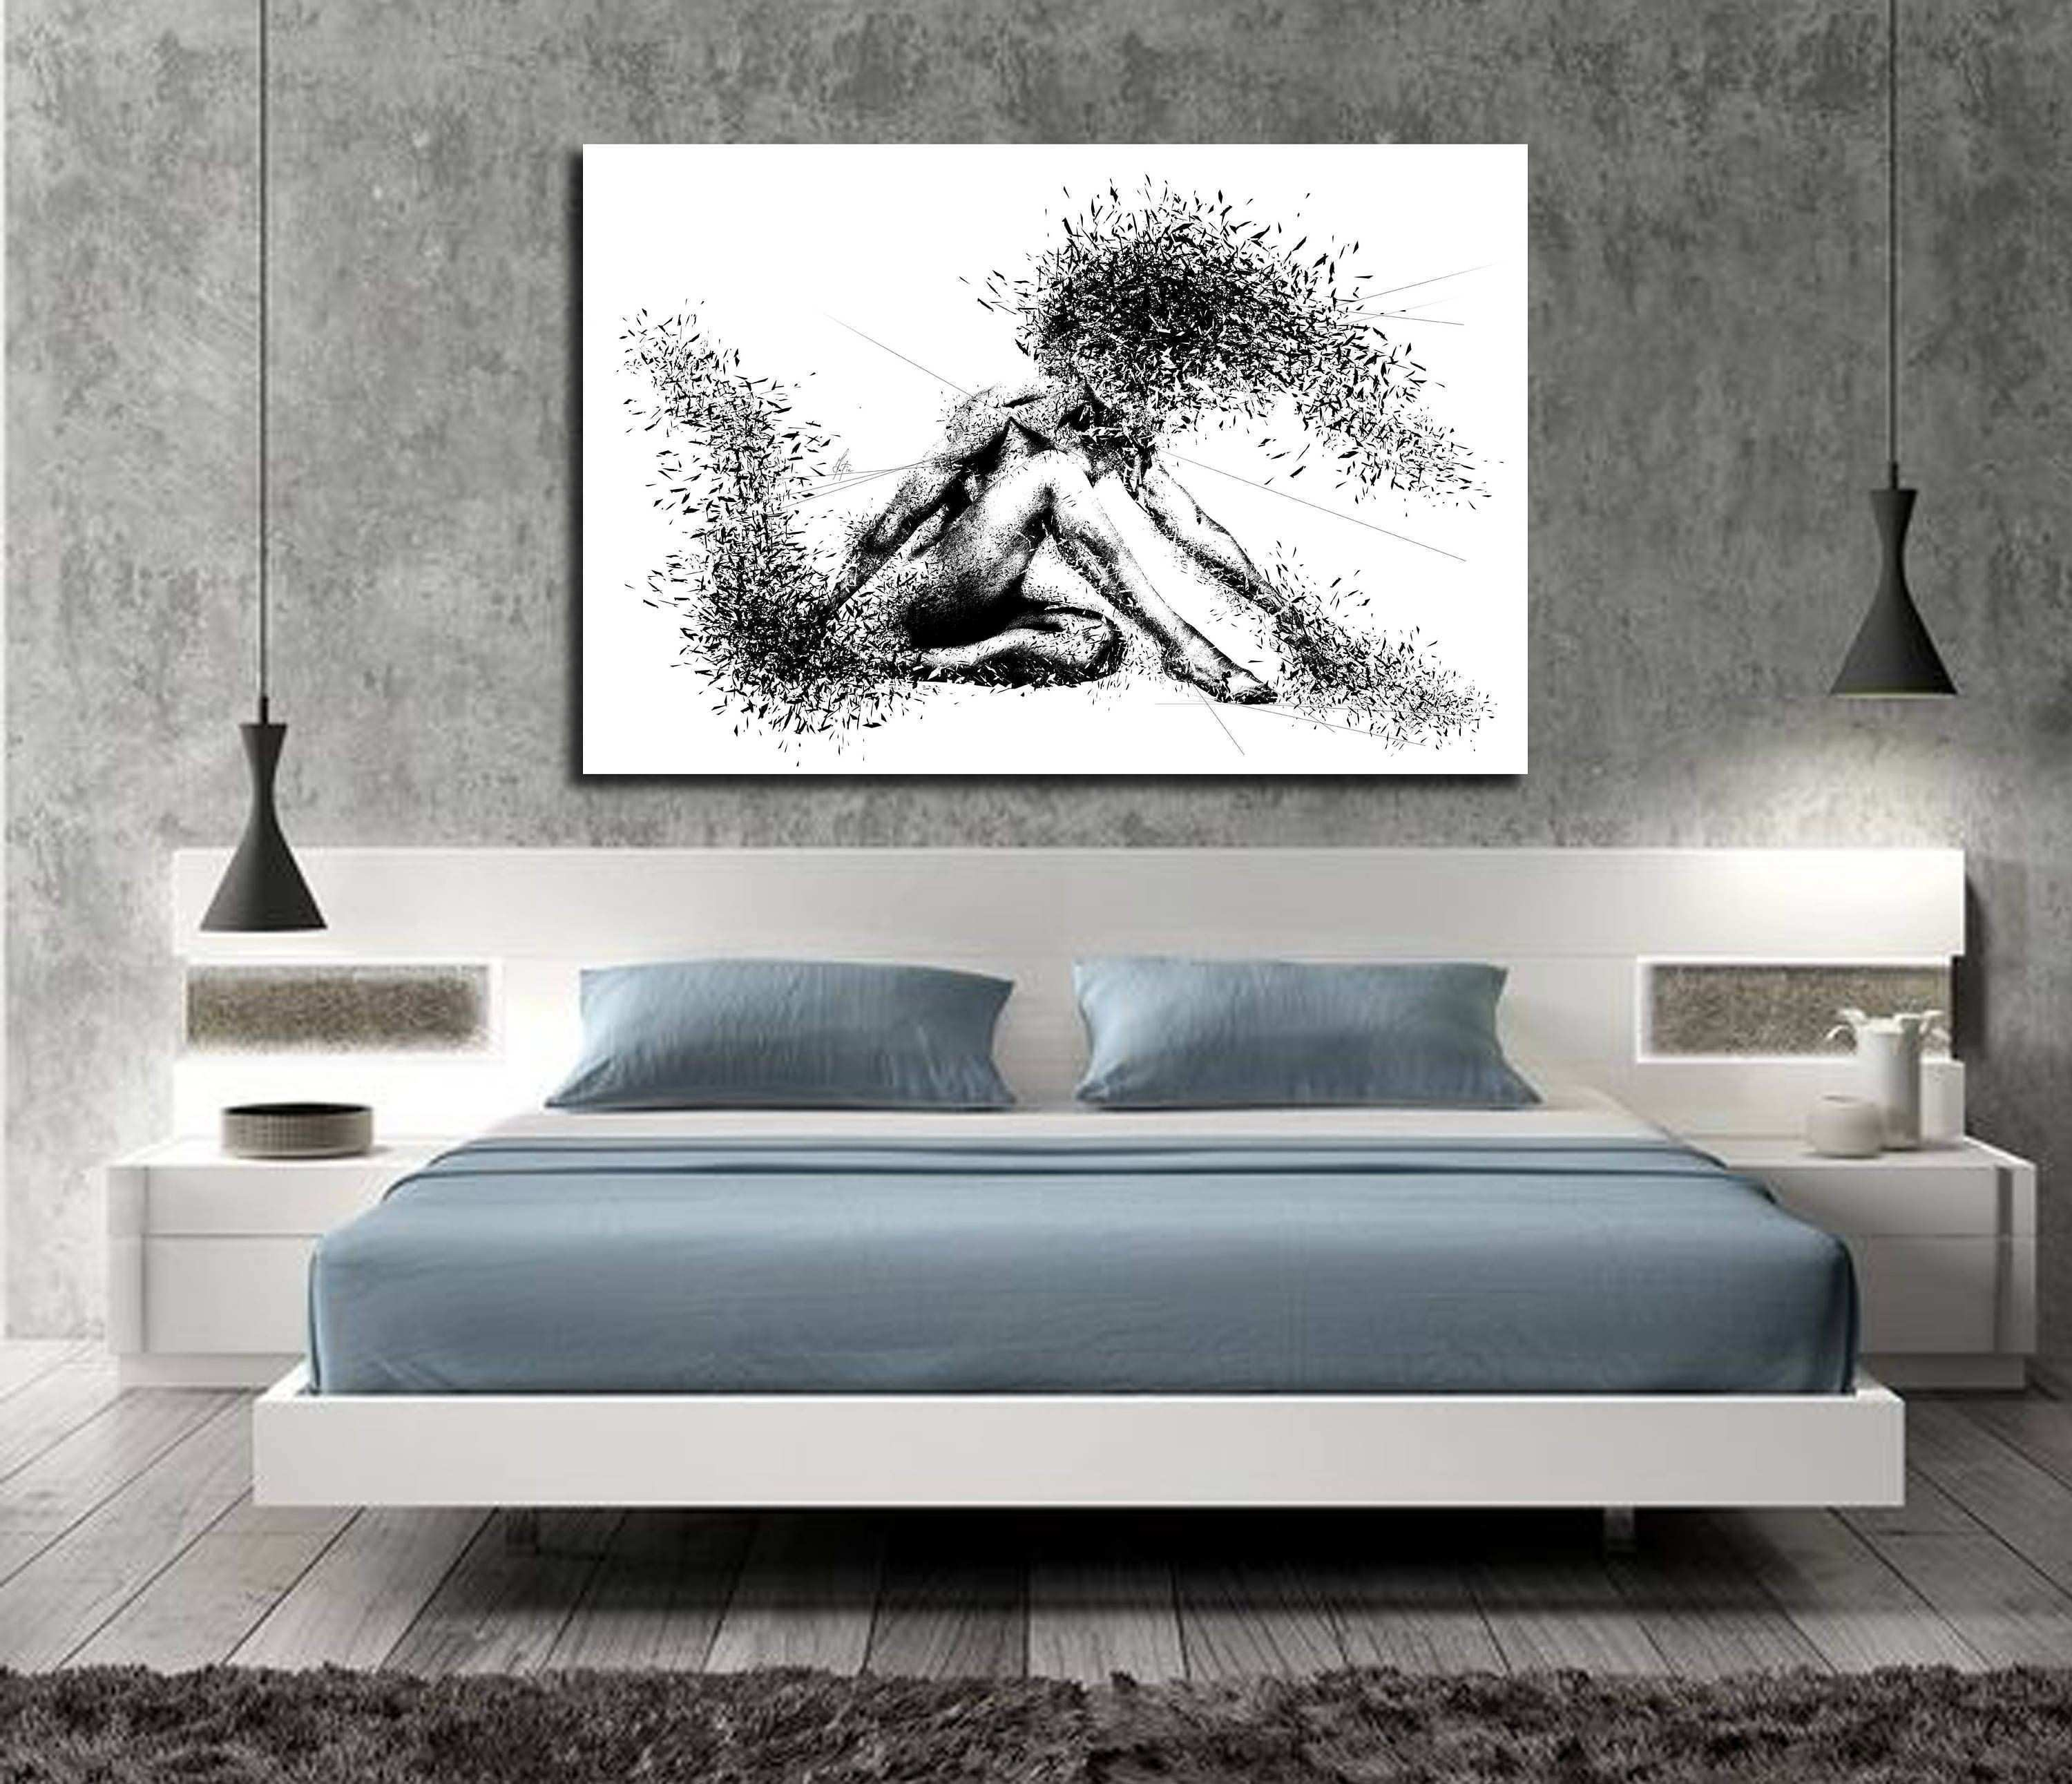 Pictures for Bedroom Wall Beautiful Canvas Art Sensual Bedroom Wall Decor Minimalist Abstract Art